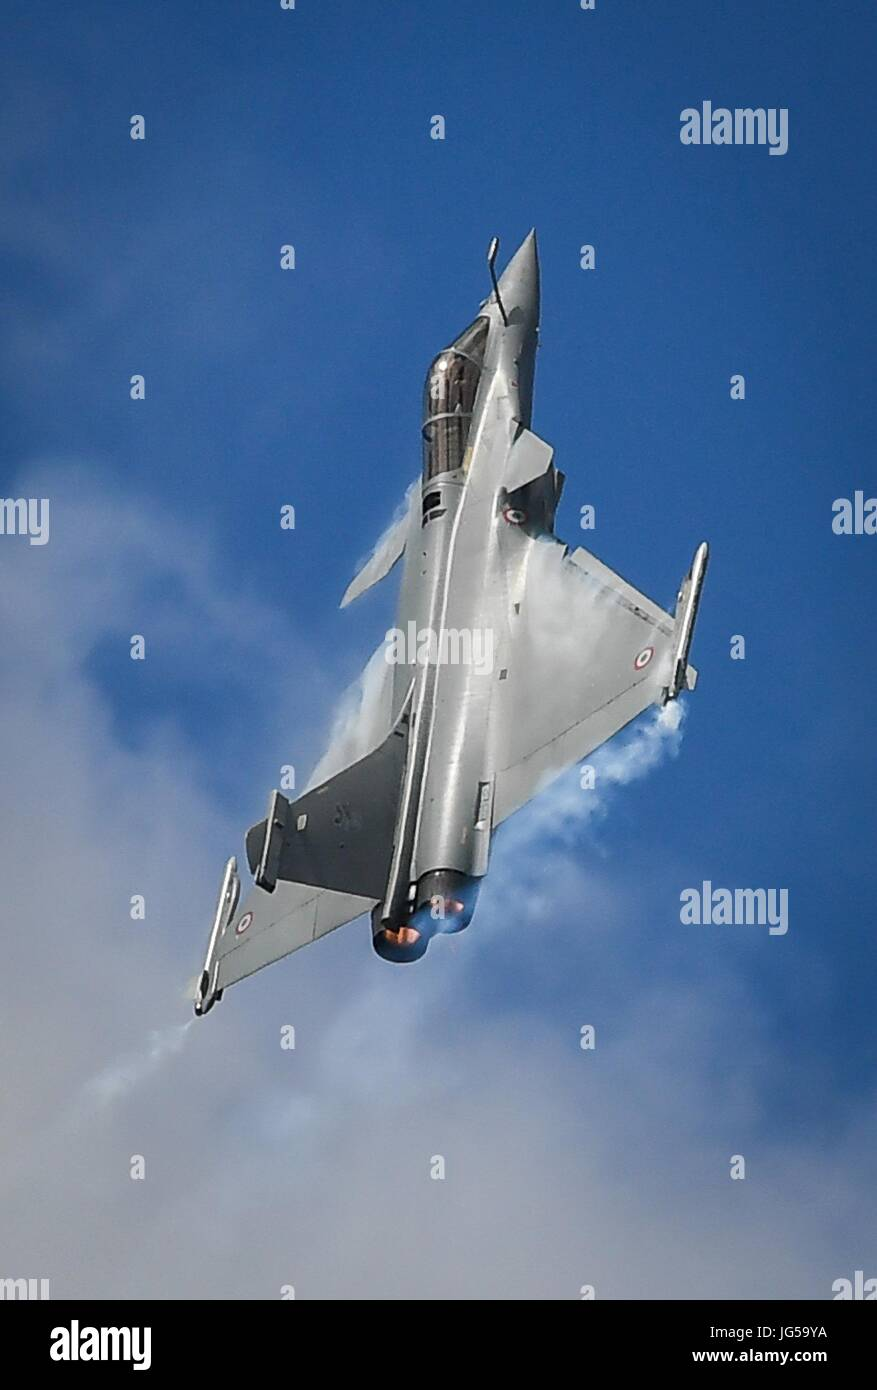 A French Dassault Rafale fighter aircraft performs aerial maneuvers during the Paris Air Show at the Paris-Le Bourget - Stock Image